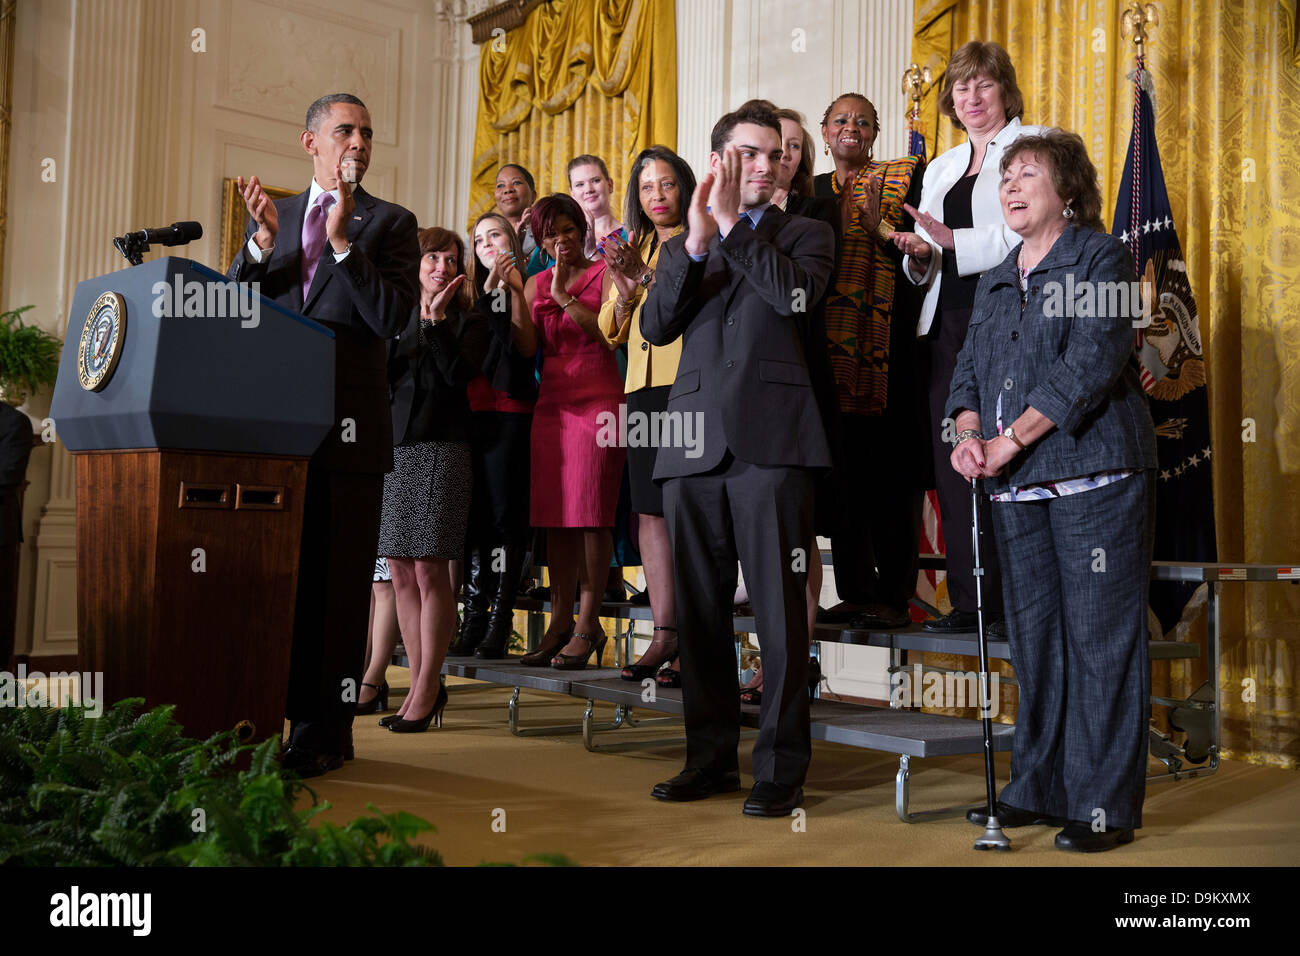 US President Barack Obama recognizes Natoma Canfield, right, during a statement on the Affordable Care Act in the - Stock Image